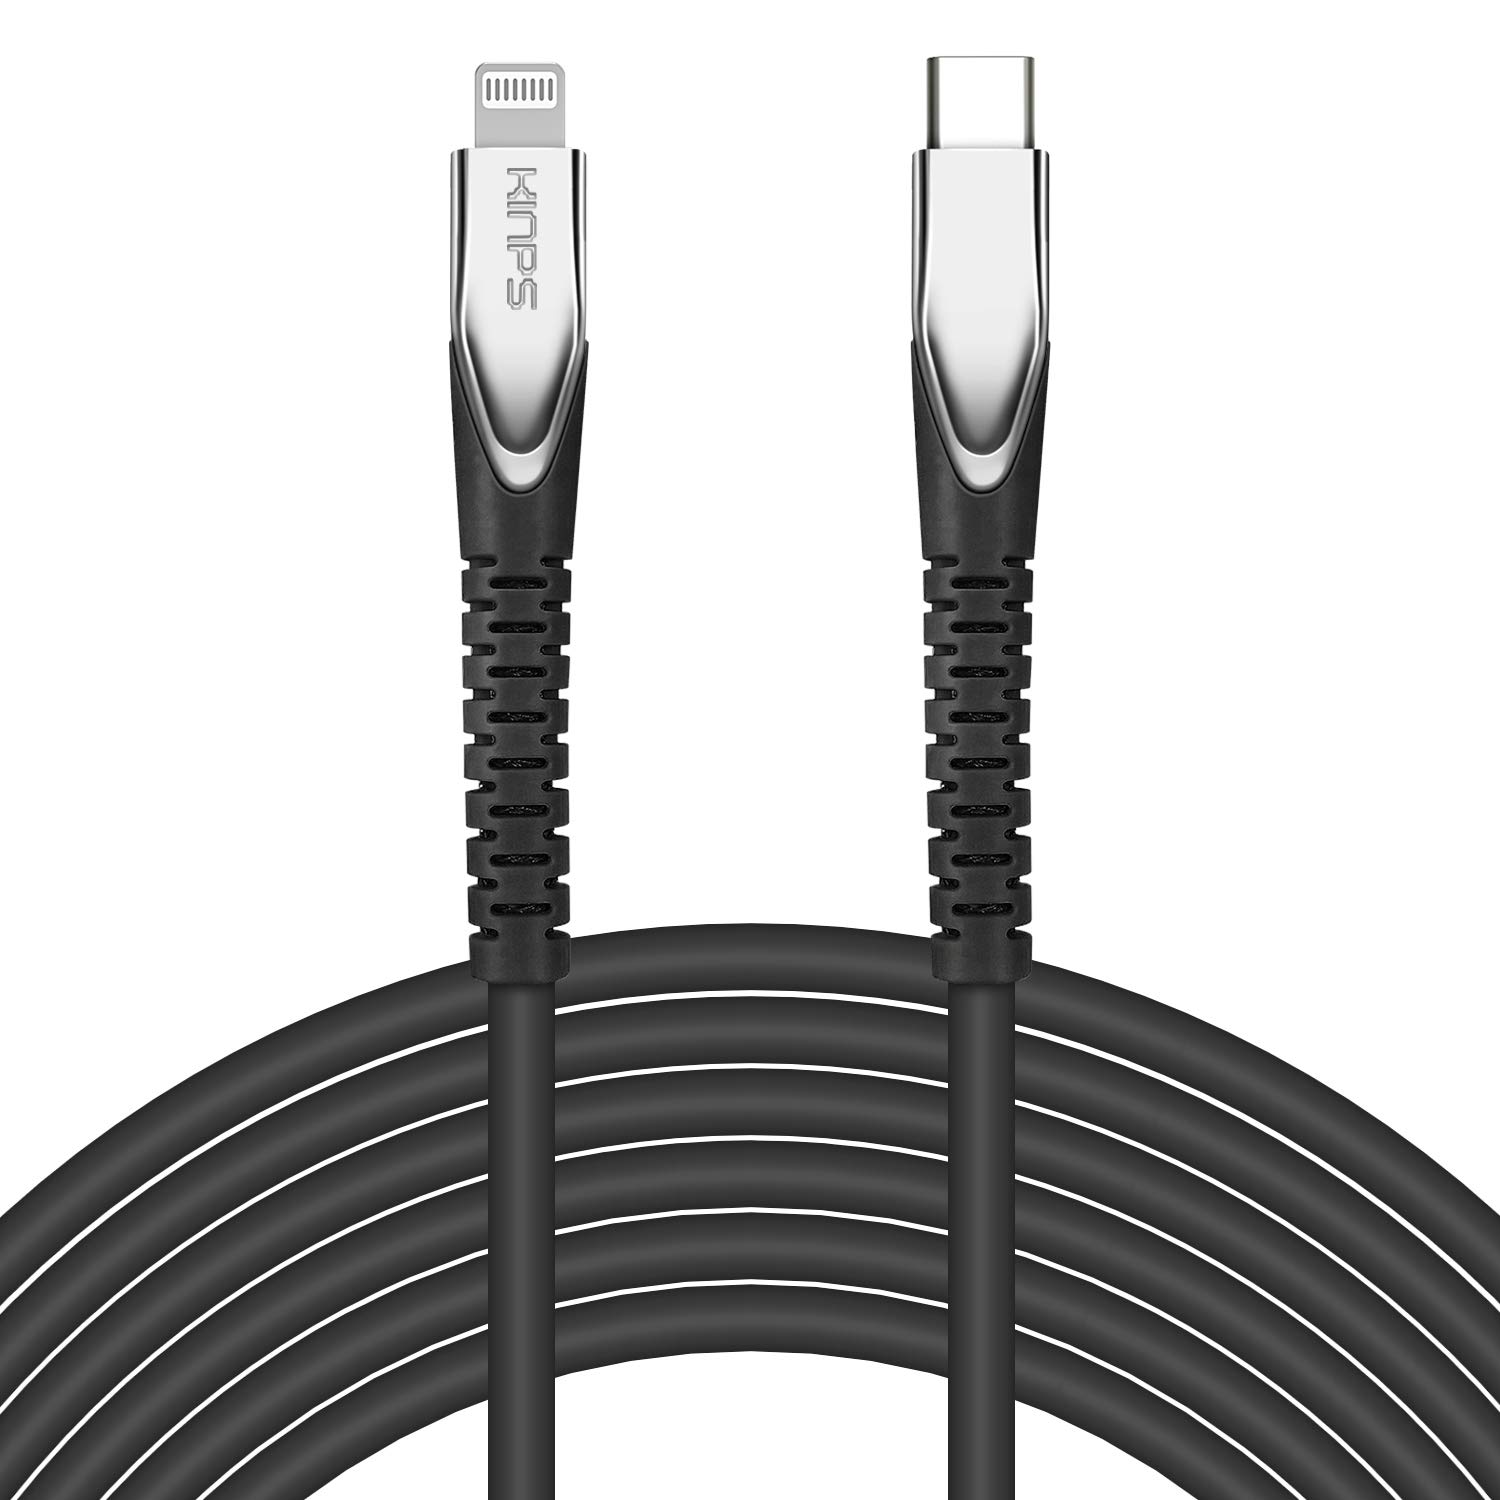 KINPS [MFI Certified 10ft] USB C to Lightning Fast Charging Cable Compatible with iPhone 12/11/11Pro/11 Pro Max/XS MAX/X/XR, Supports Power Delivery(for Use with Type C Chargers), Black